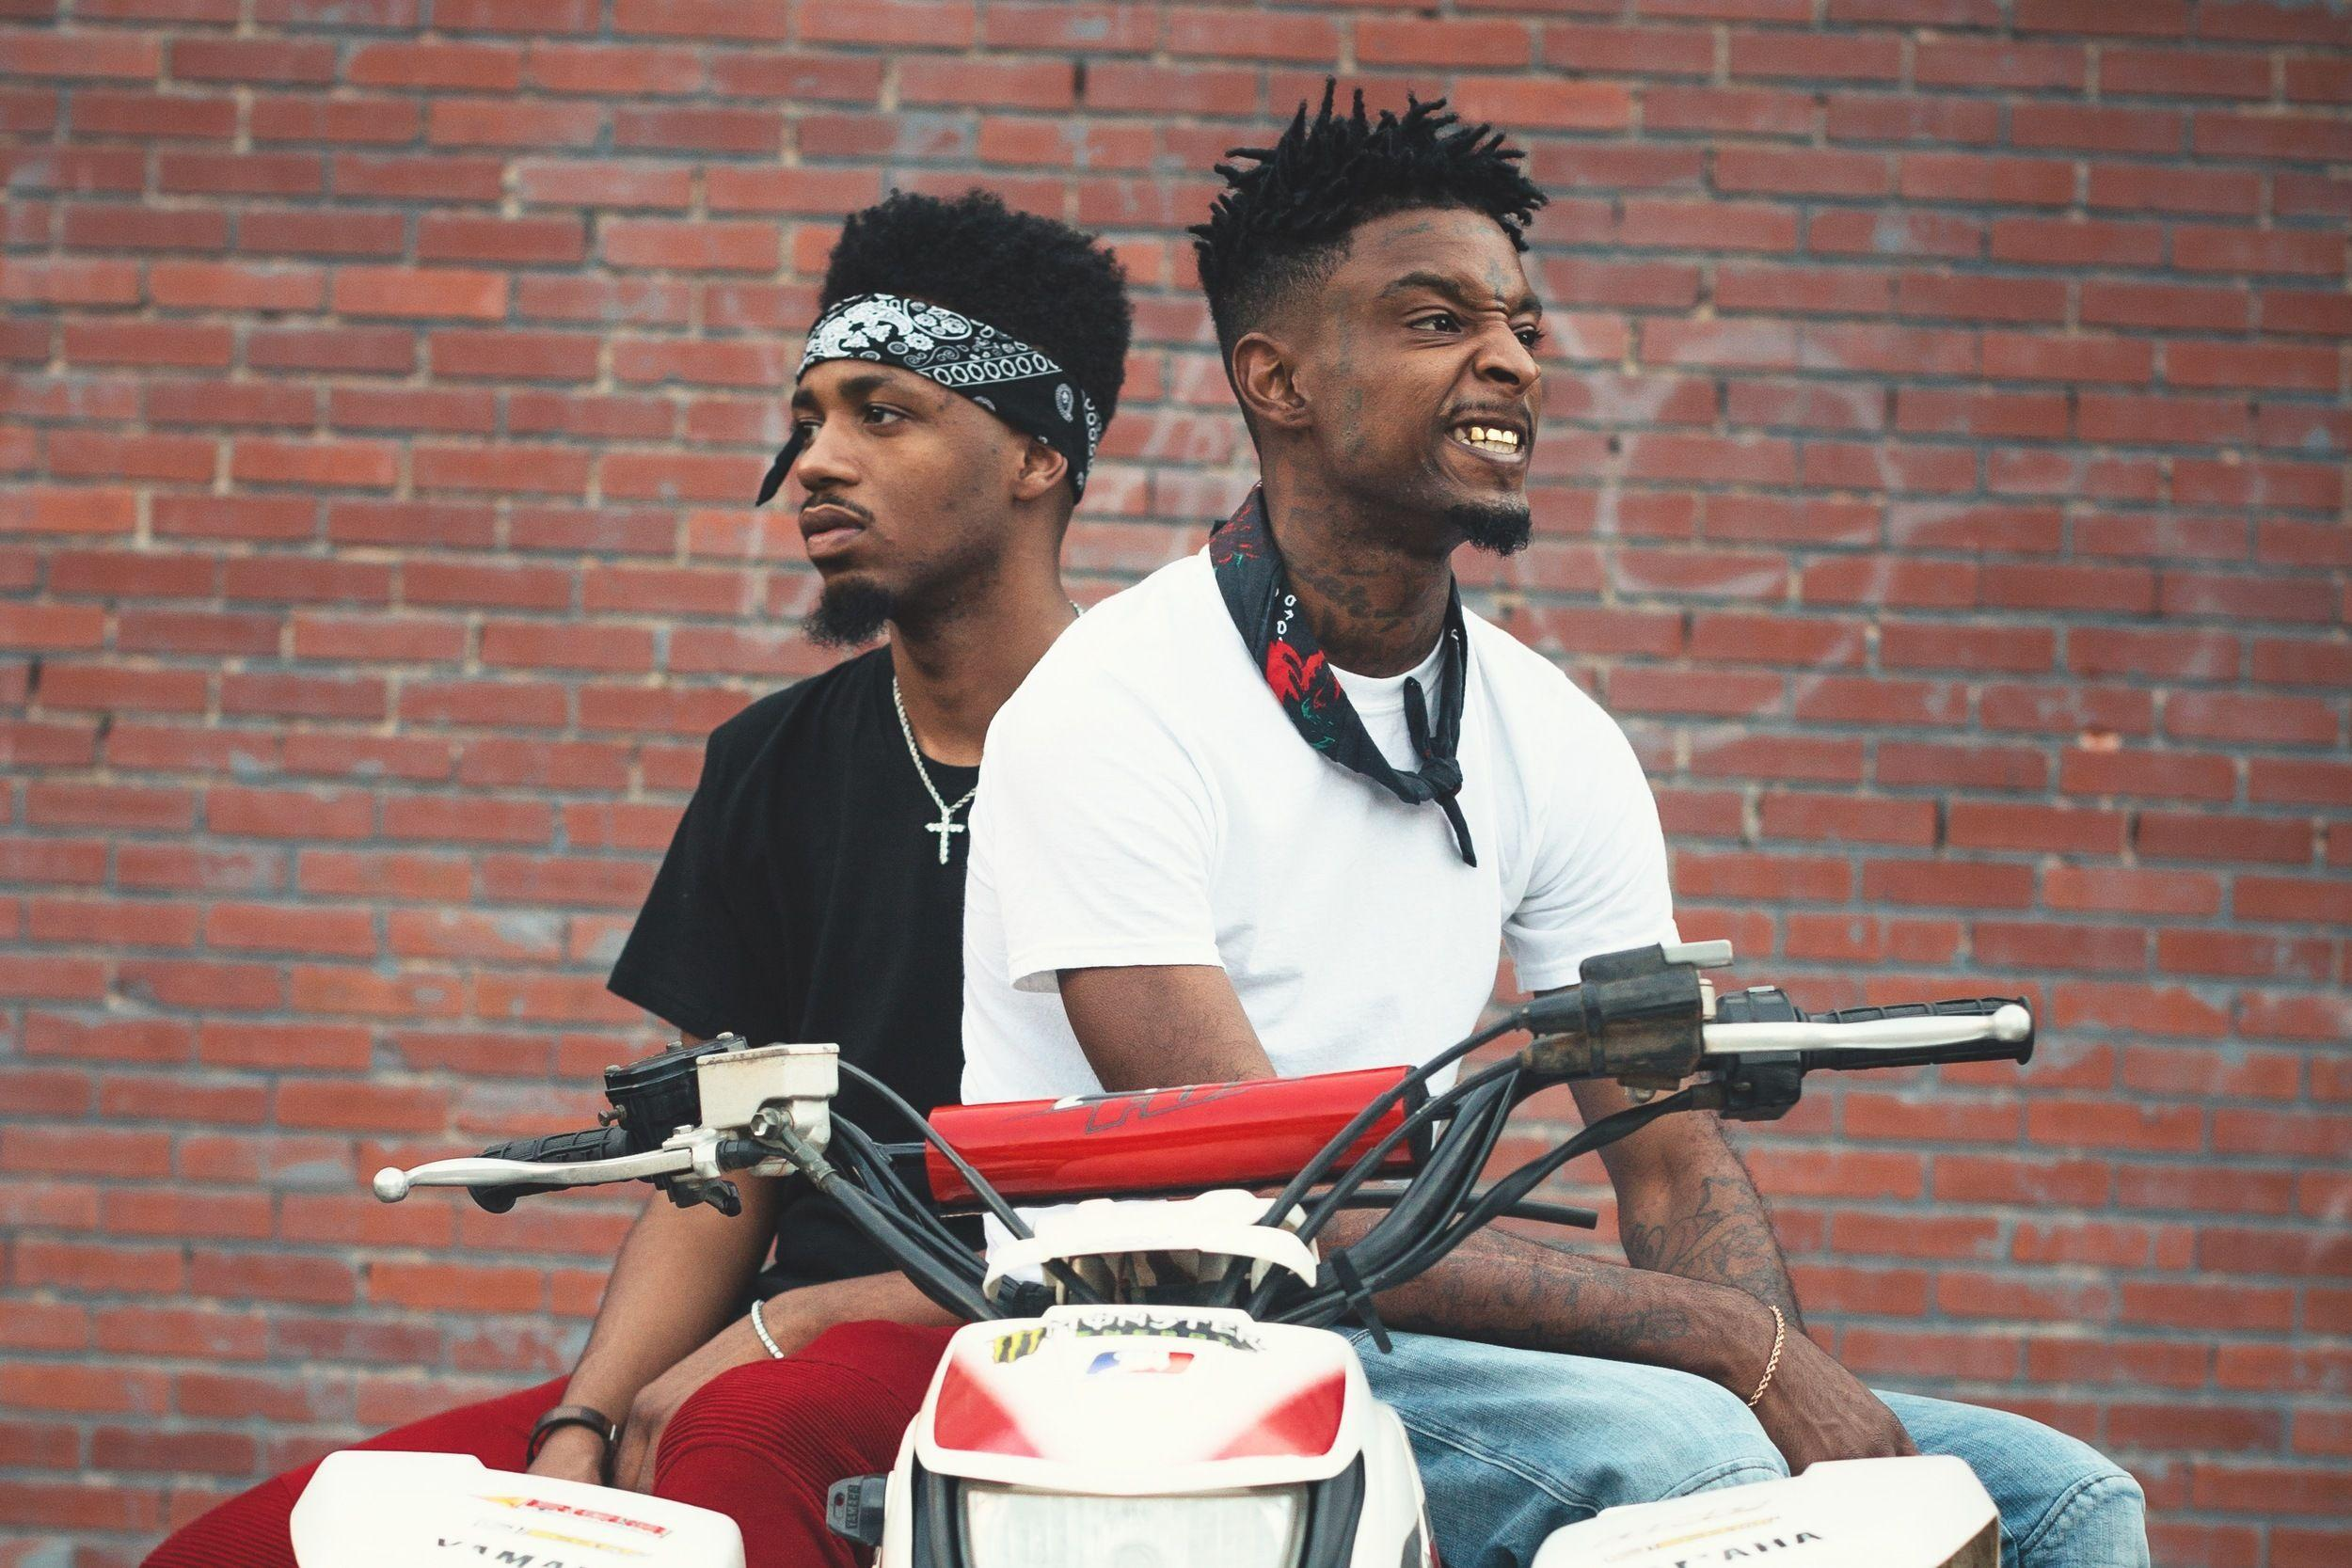 21 savage hd wallpaper background image 2500x1667 id 884263